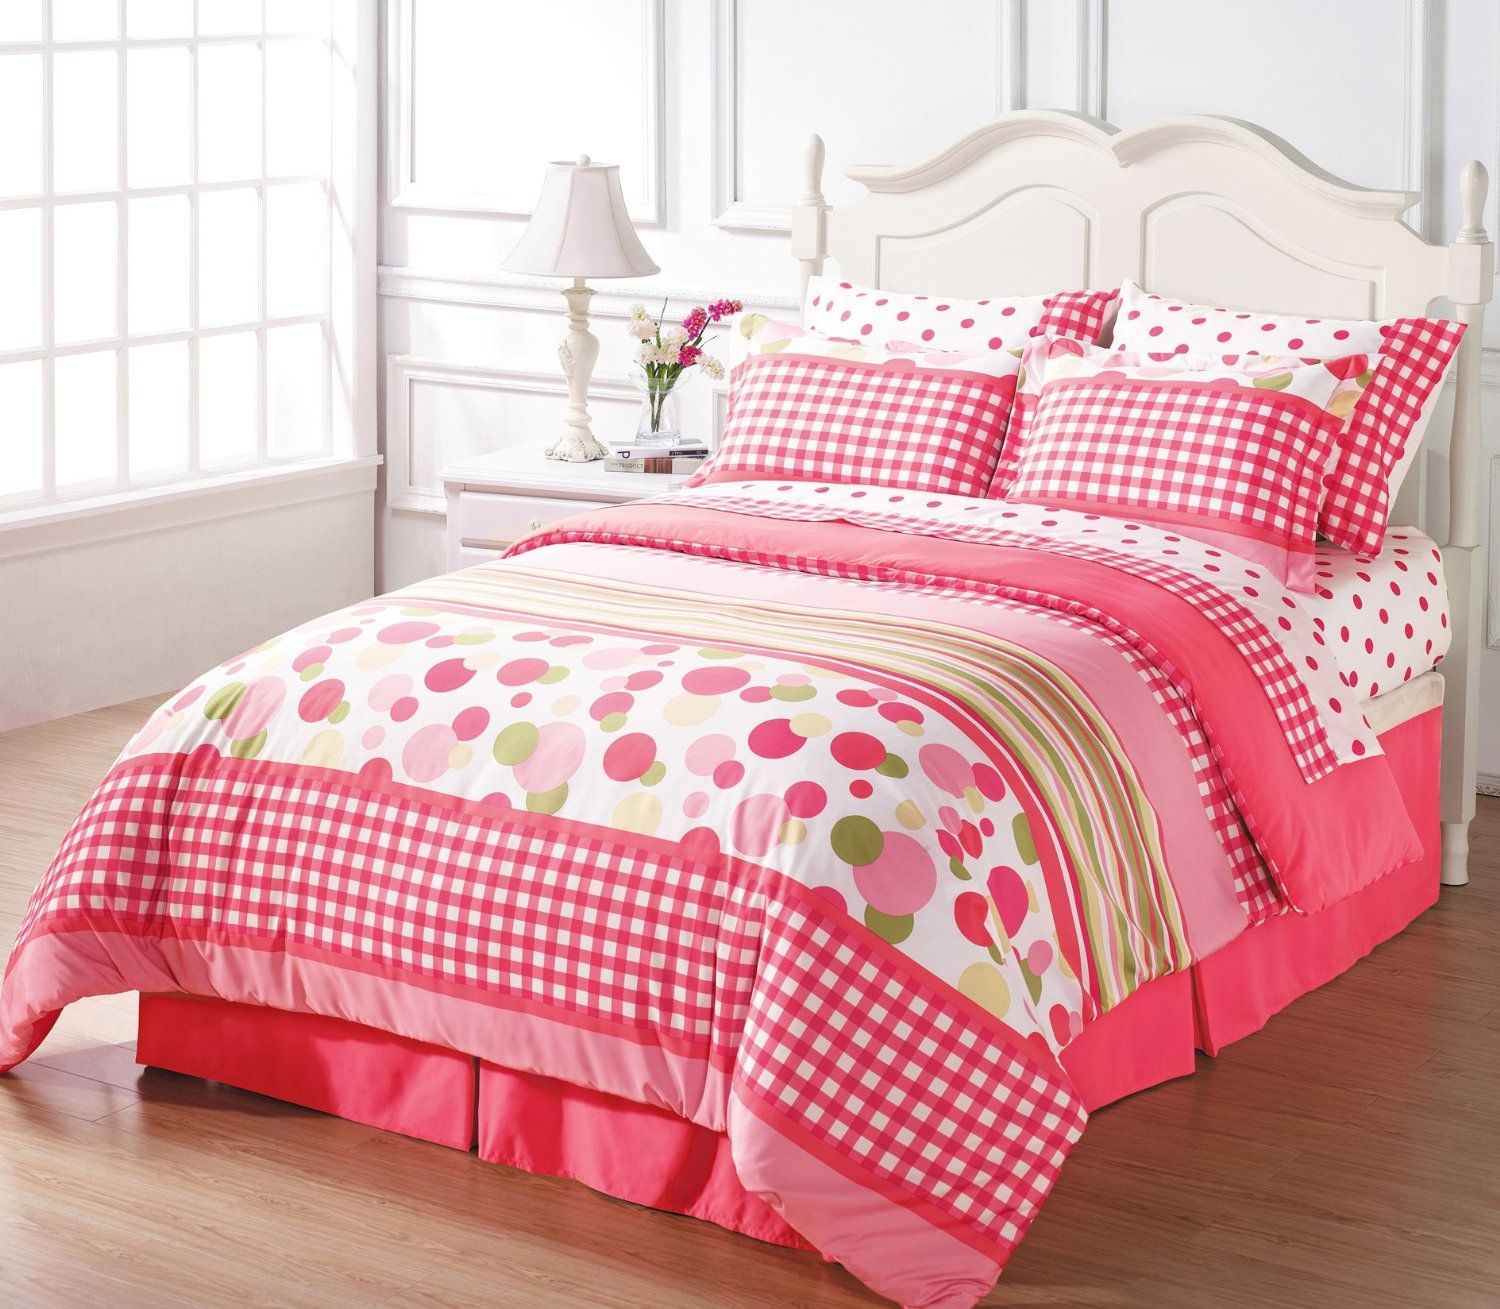 and net girls pink girl of bedding comforter bedroom sets modern twin set designs from linenr sourcemaildeflector green